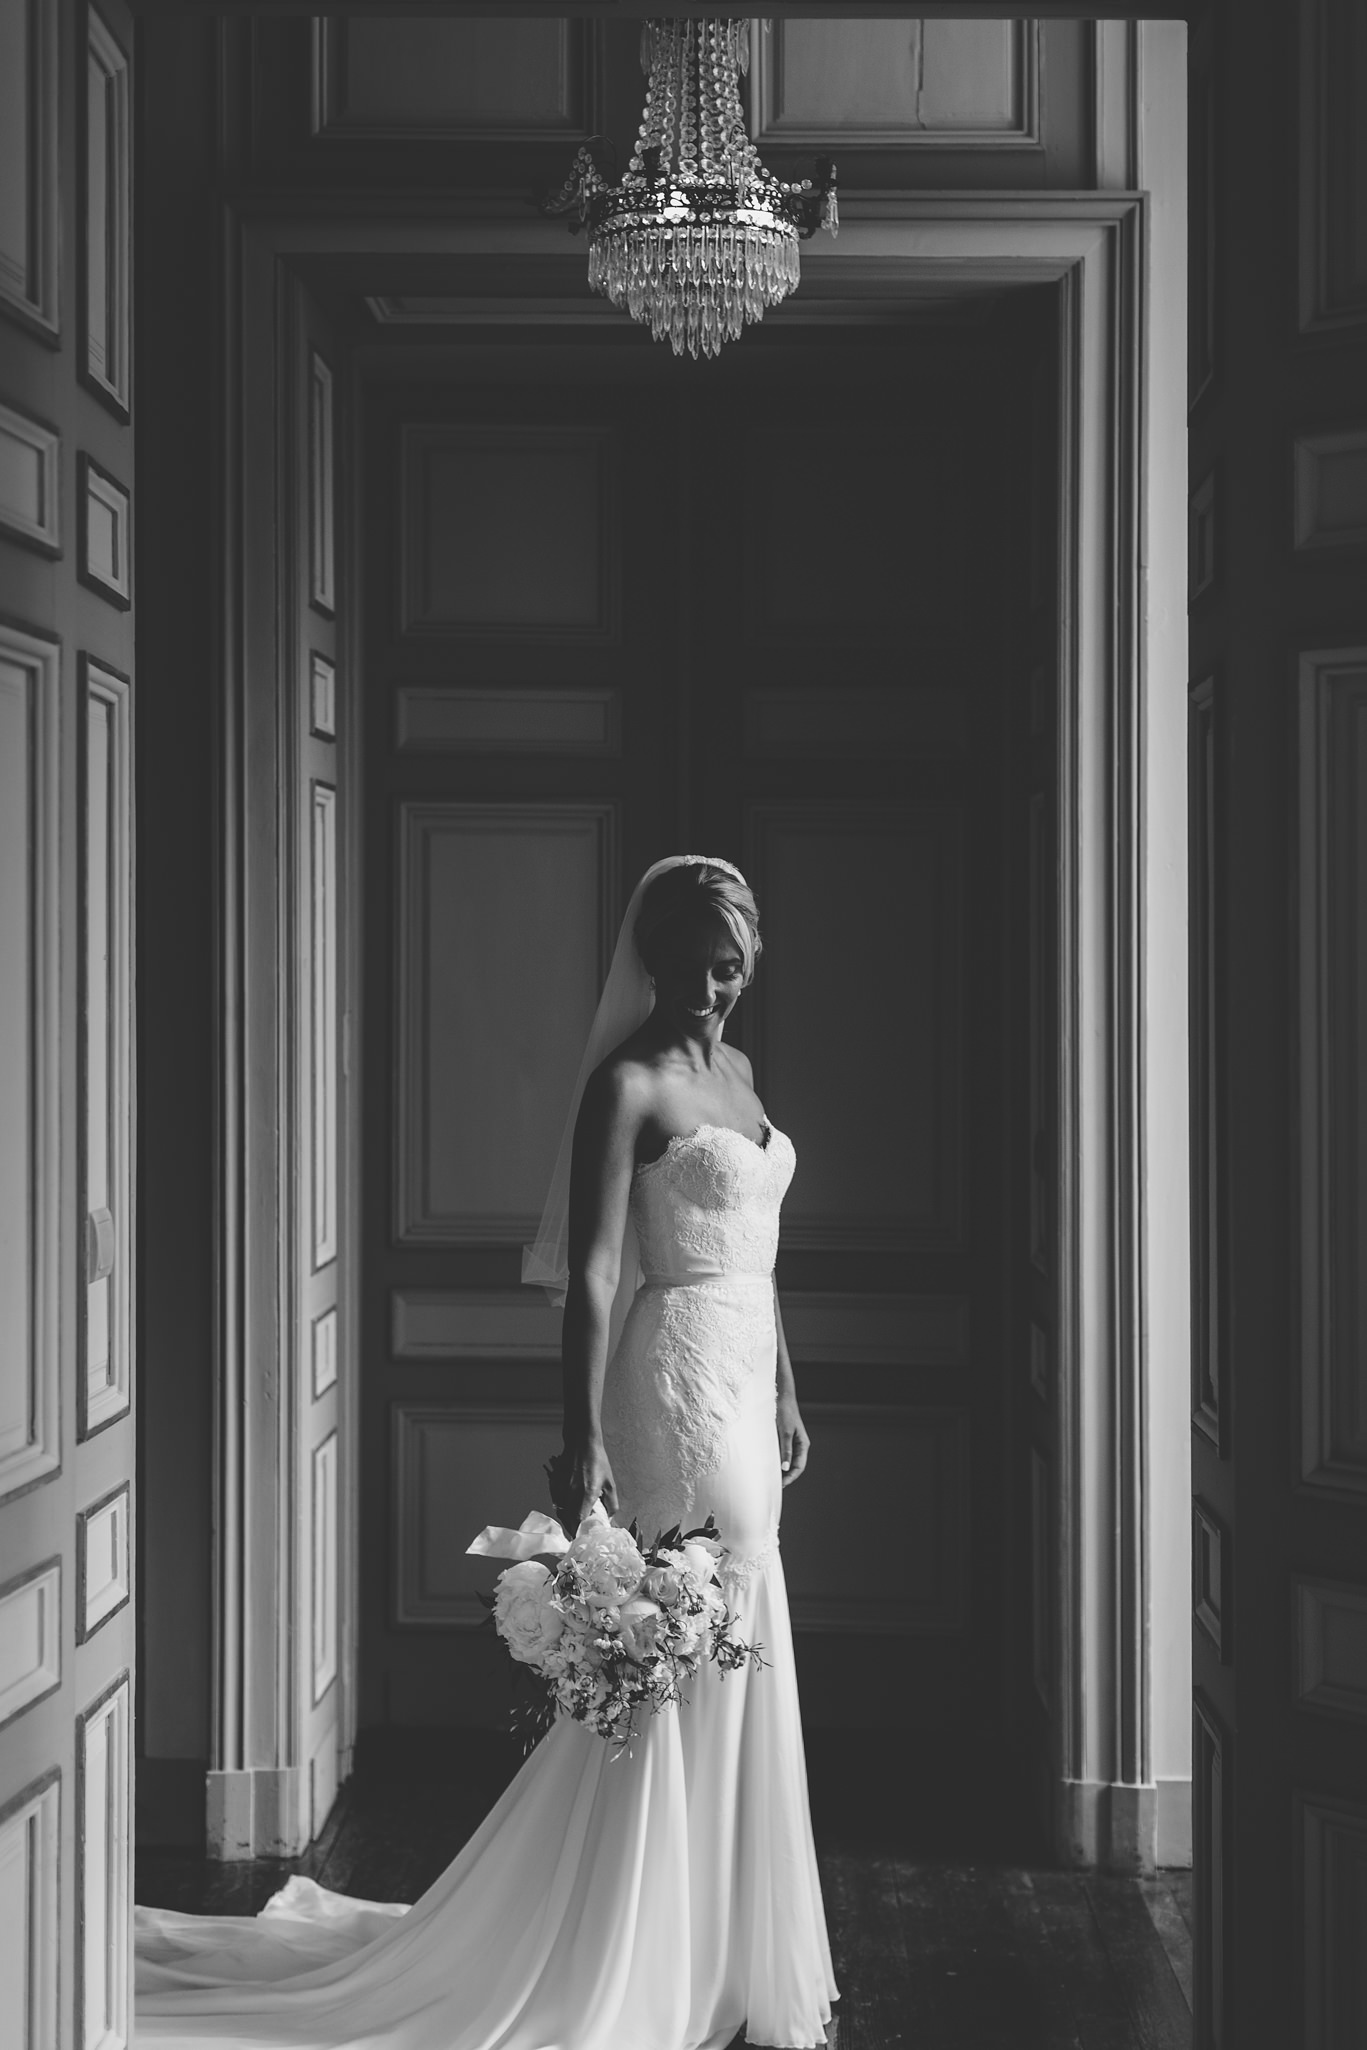 Chateau La Durantie - French Wedding PhotographerChateau La Durantie - French Wedding Photographer